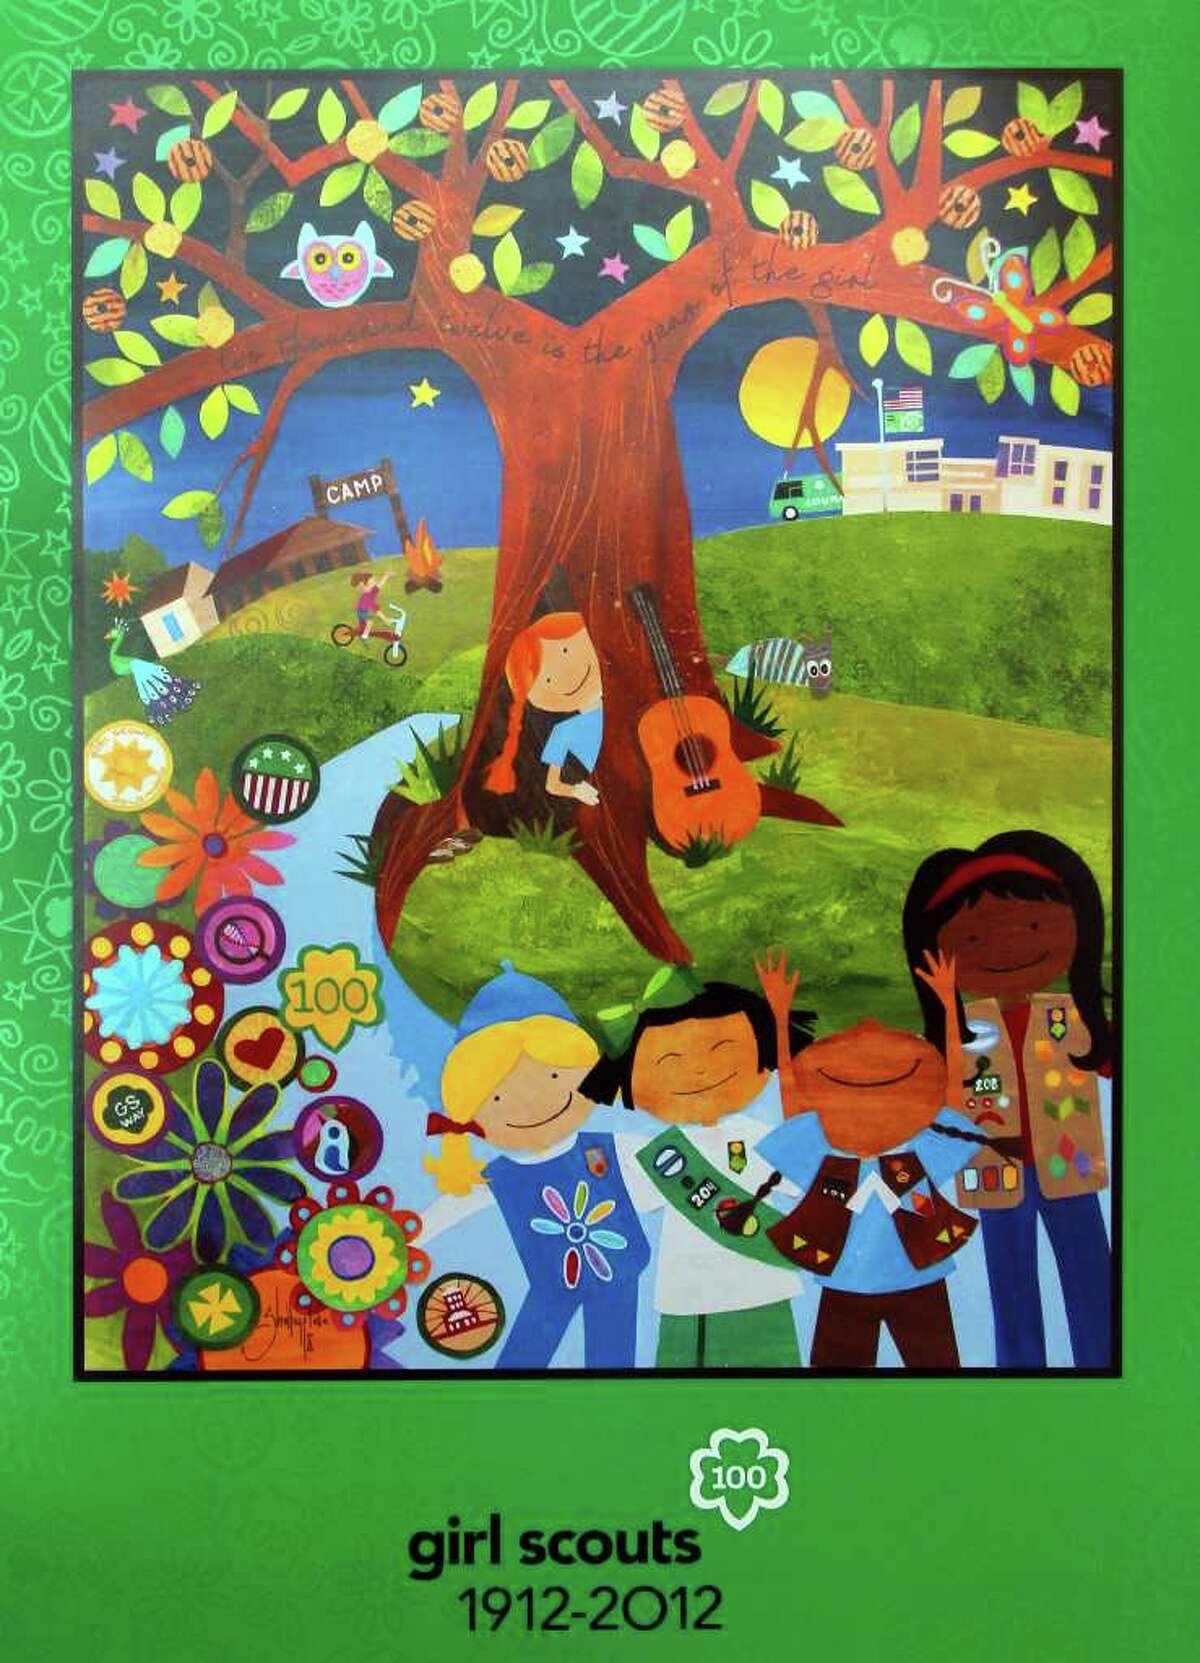 Shelley Fluke, a four-time Fiesta San Antonio poster artist, has created the Girls Scouts' anniversary poster.